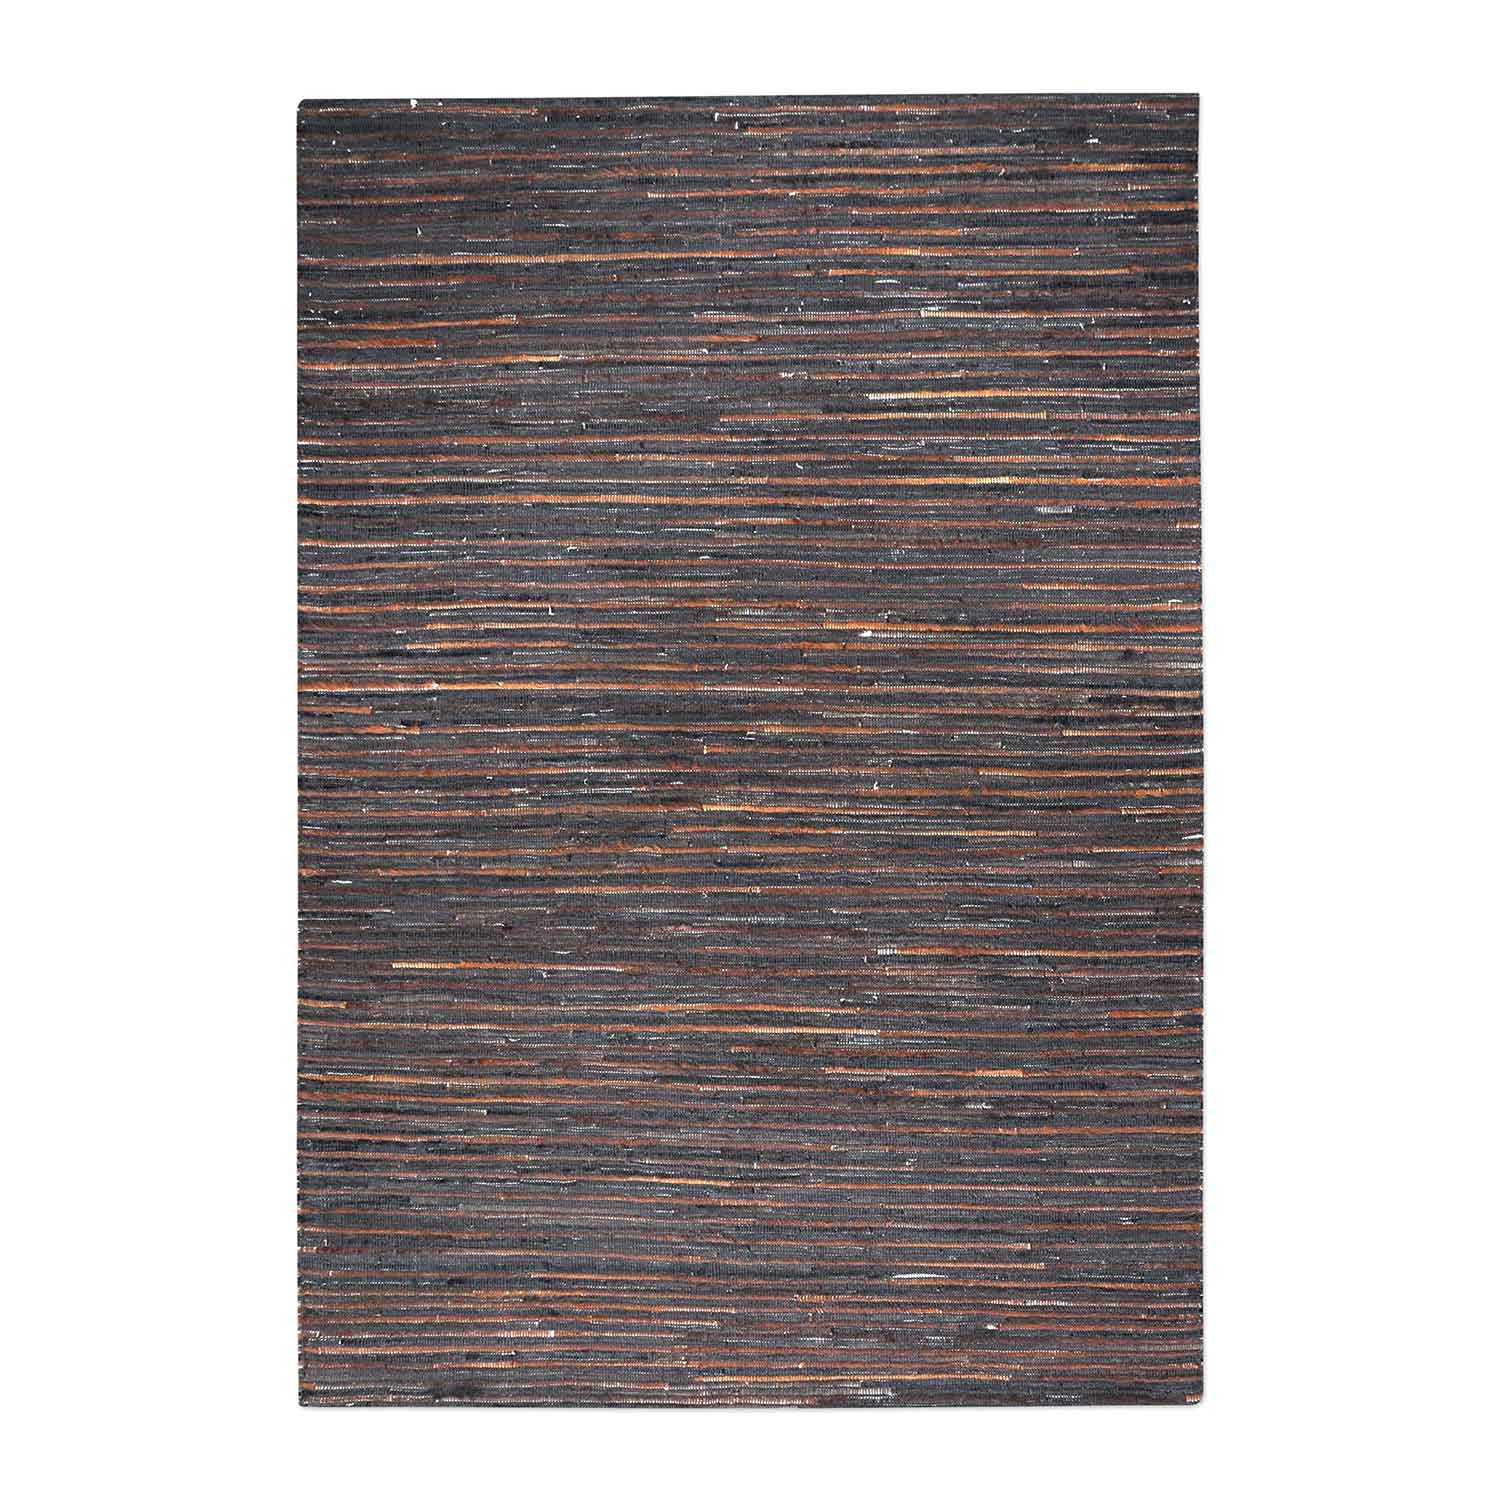 Uttermost Riviera 8 x 10 Rug - Dark Brown